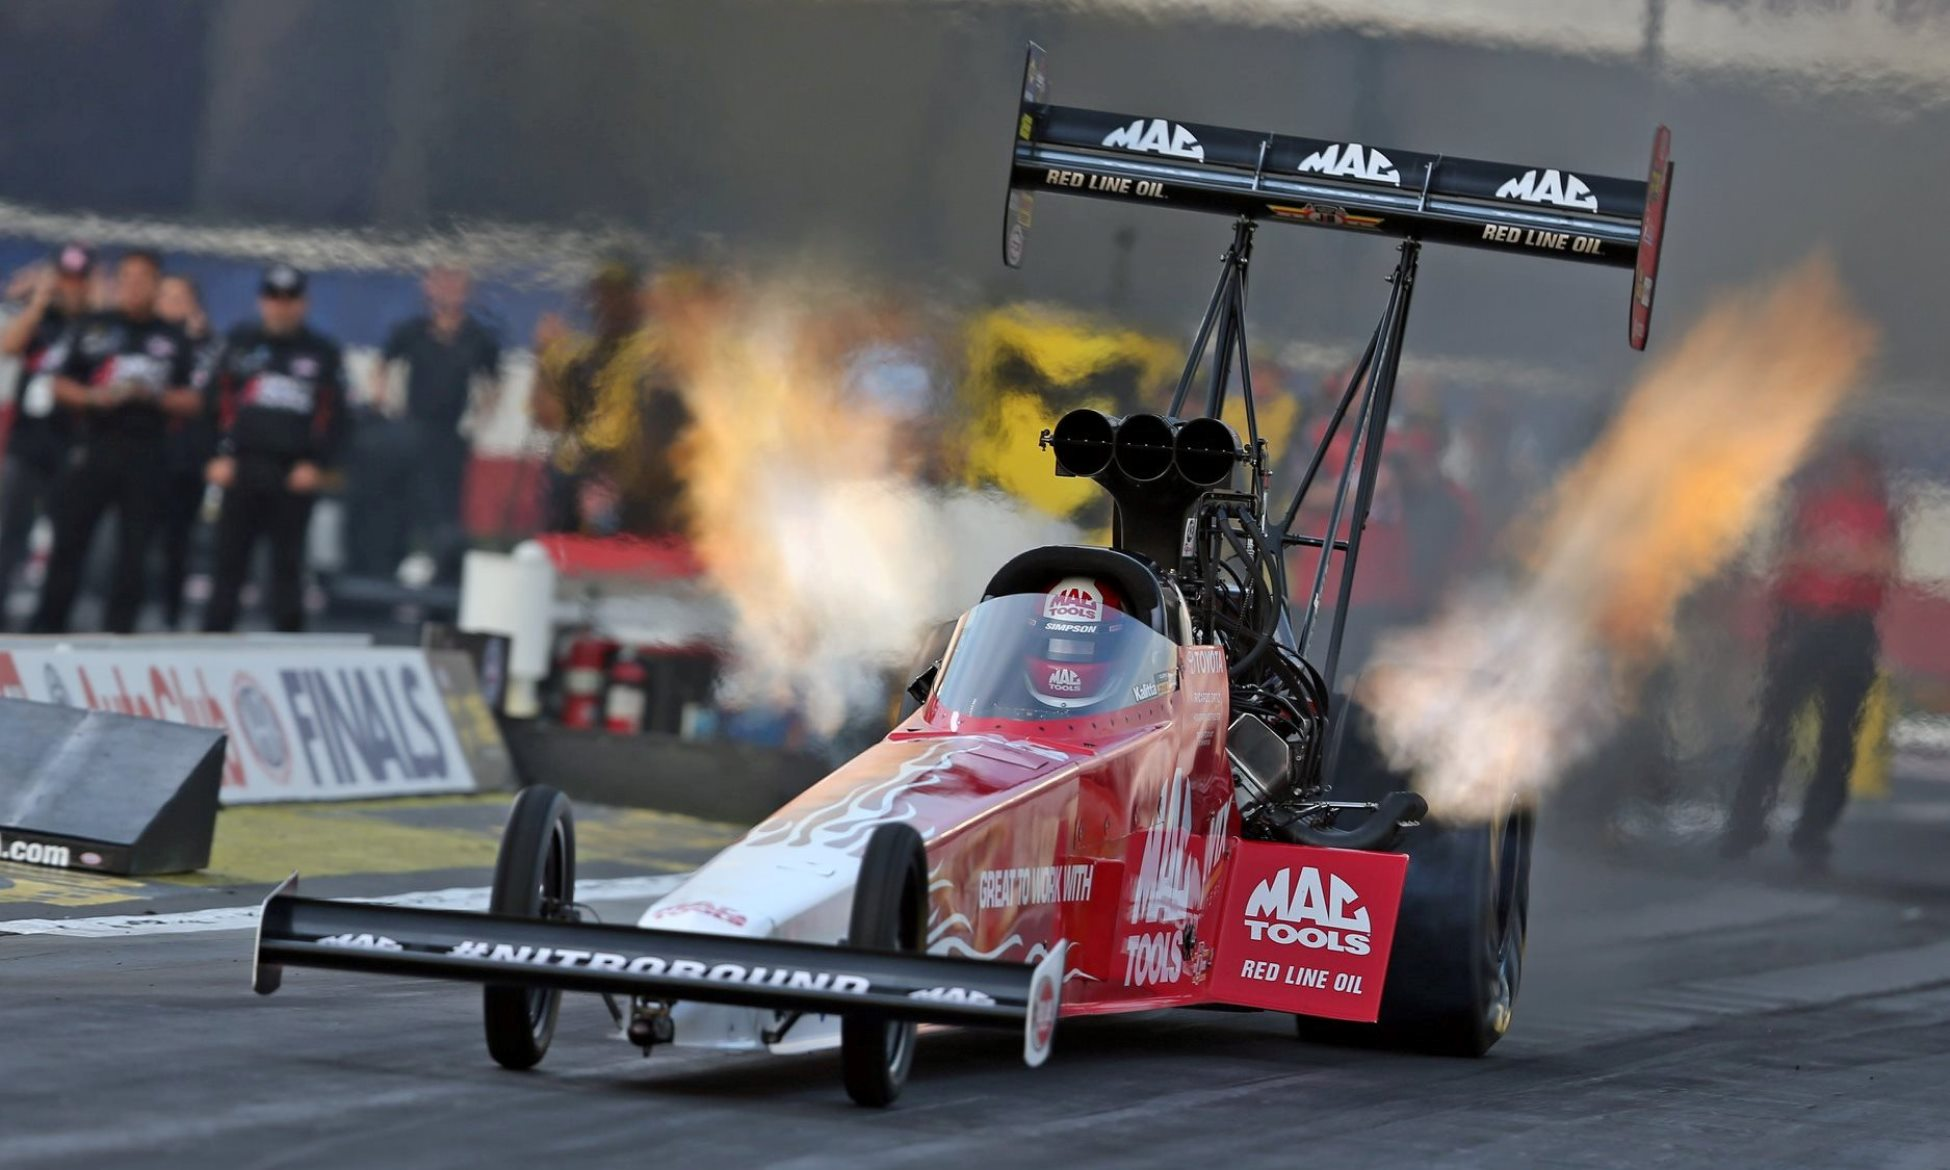 Top Fuel Drag Racing Facts